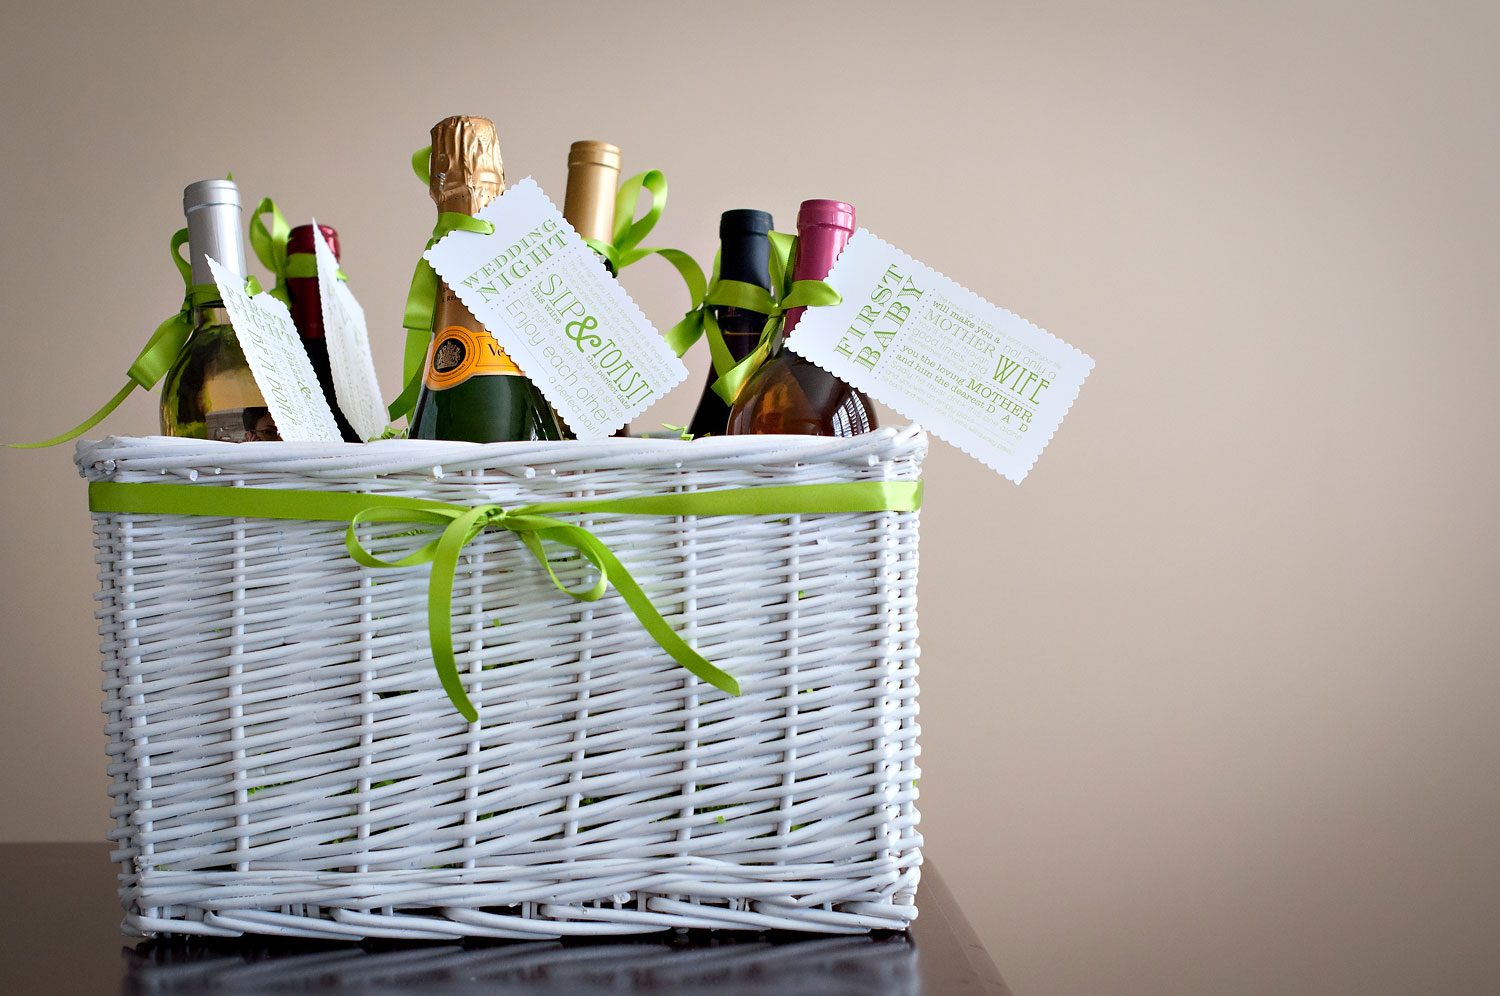 Last Minute Gift - Forgot Someone? Ship with Two Day Prime or Express Delivery. Wine Country Gift Baskets is a high quality brand that your loved one or friends will appreciate; our gift baskets are hand assembled and include some of the top brand named ingredients that we know you will love.